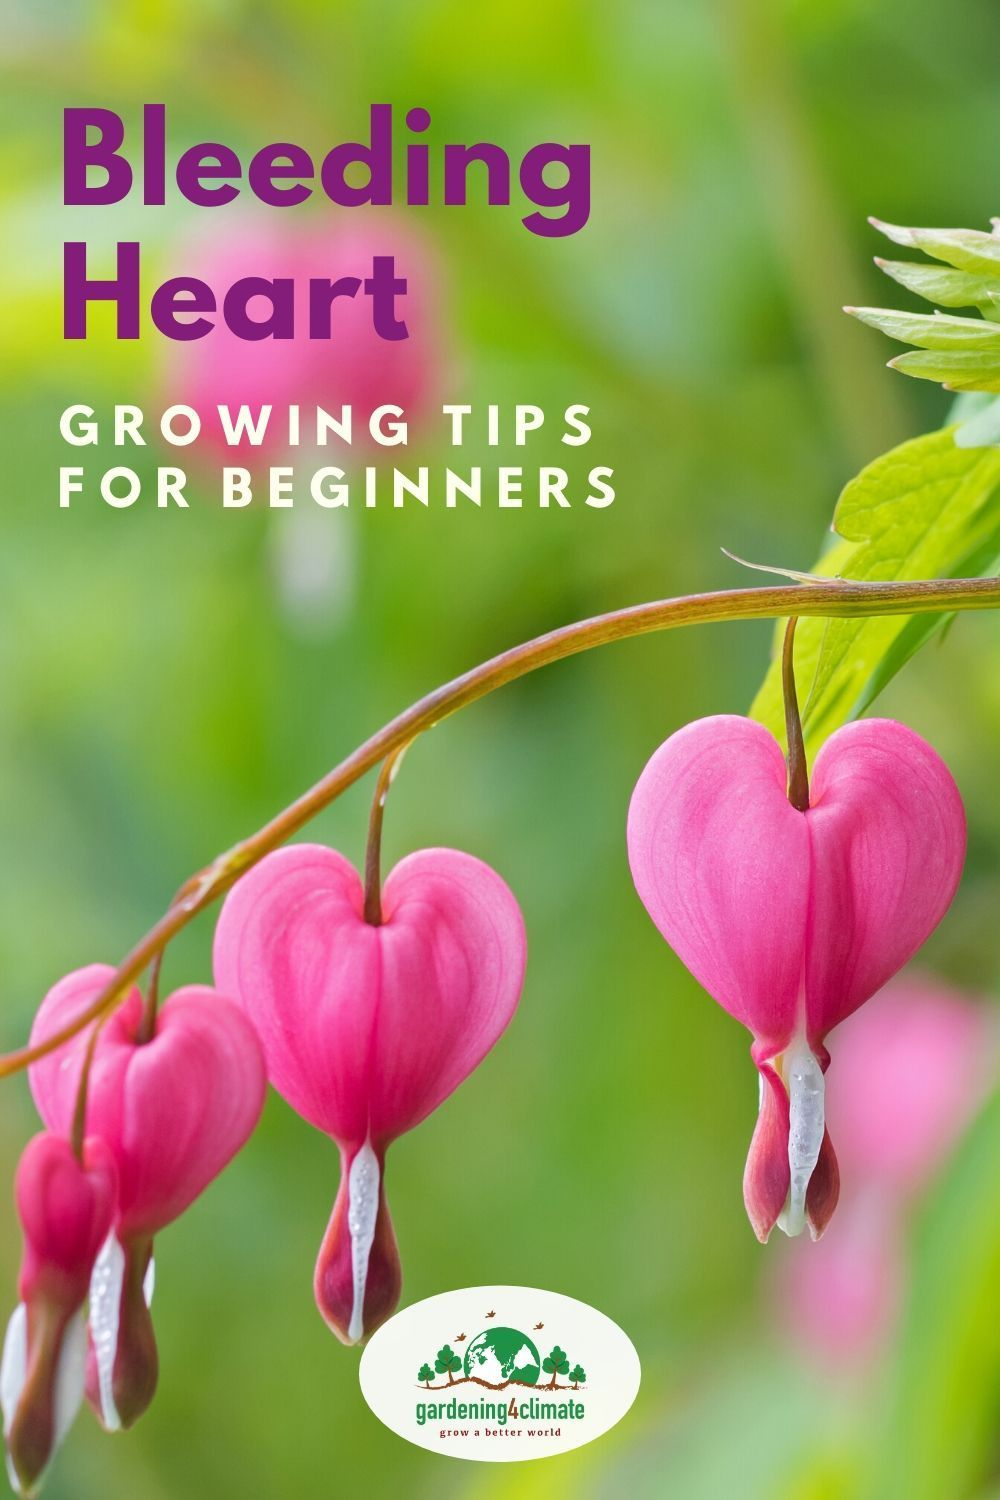 The Bleeding Heart Plant Growing Tips In 2020 Bleeding Heart Plant Bleeding Heart Bleeding Heart Flower